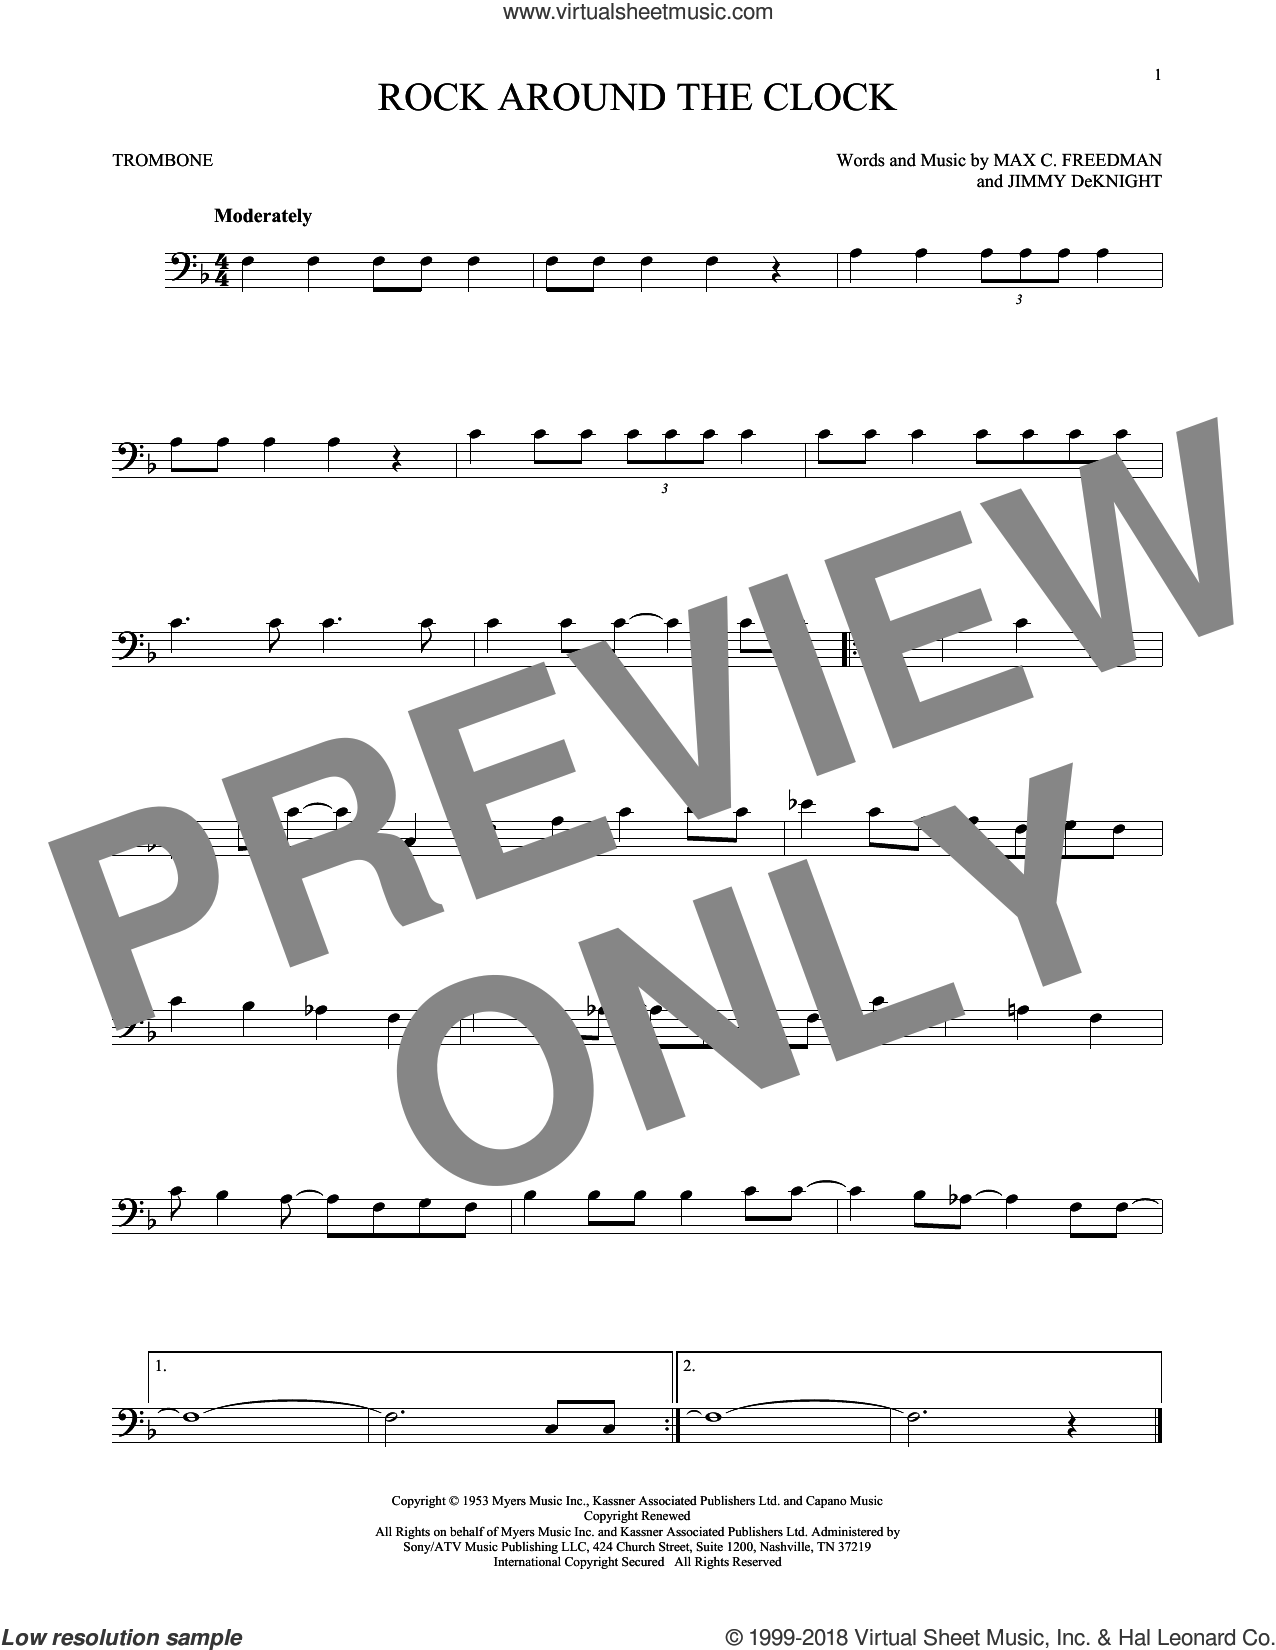 Rock Around The Clock sheet music for trombone solo by Bill Haley & His Comets, Jimmy DeKnight and Max C. Freedman, intermediate skill level